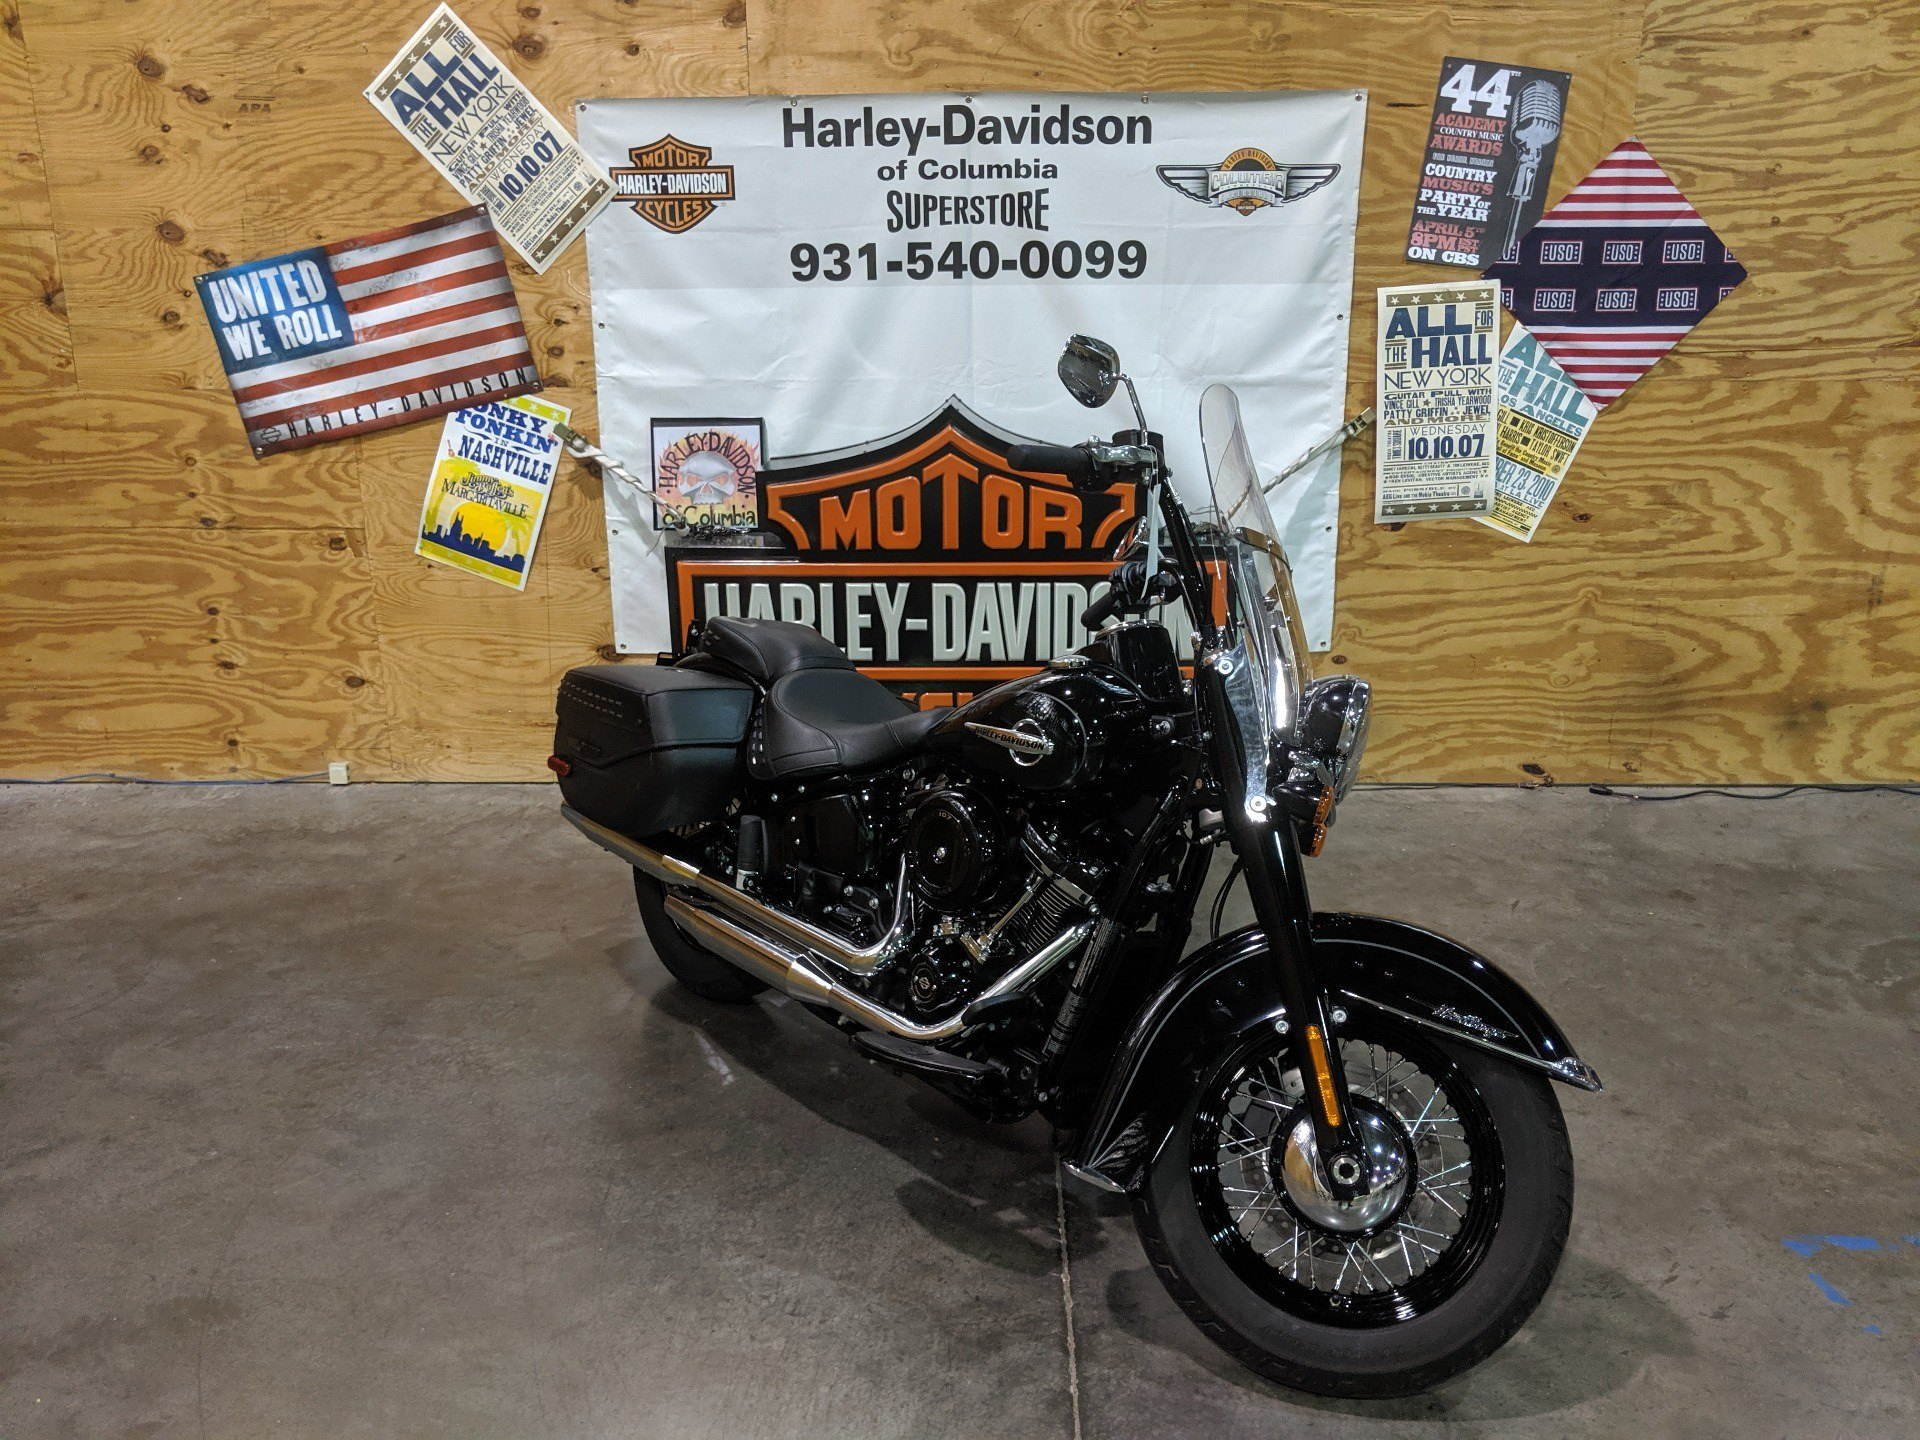 2018 Harley-Davidson HERITAGE in Columbia, Tennessee - Photo 2